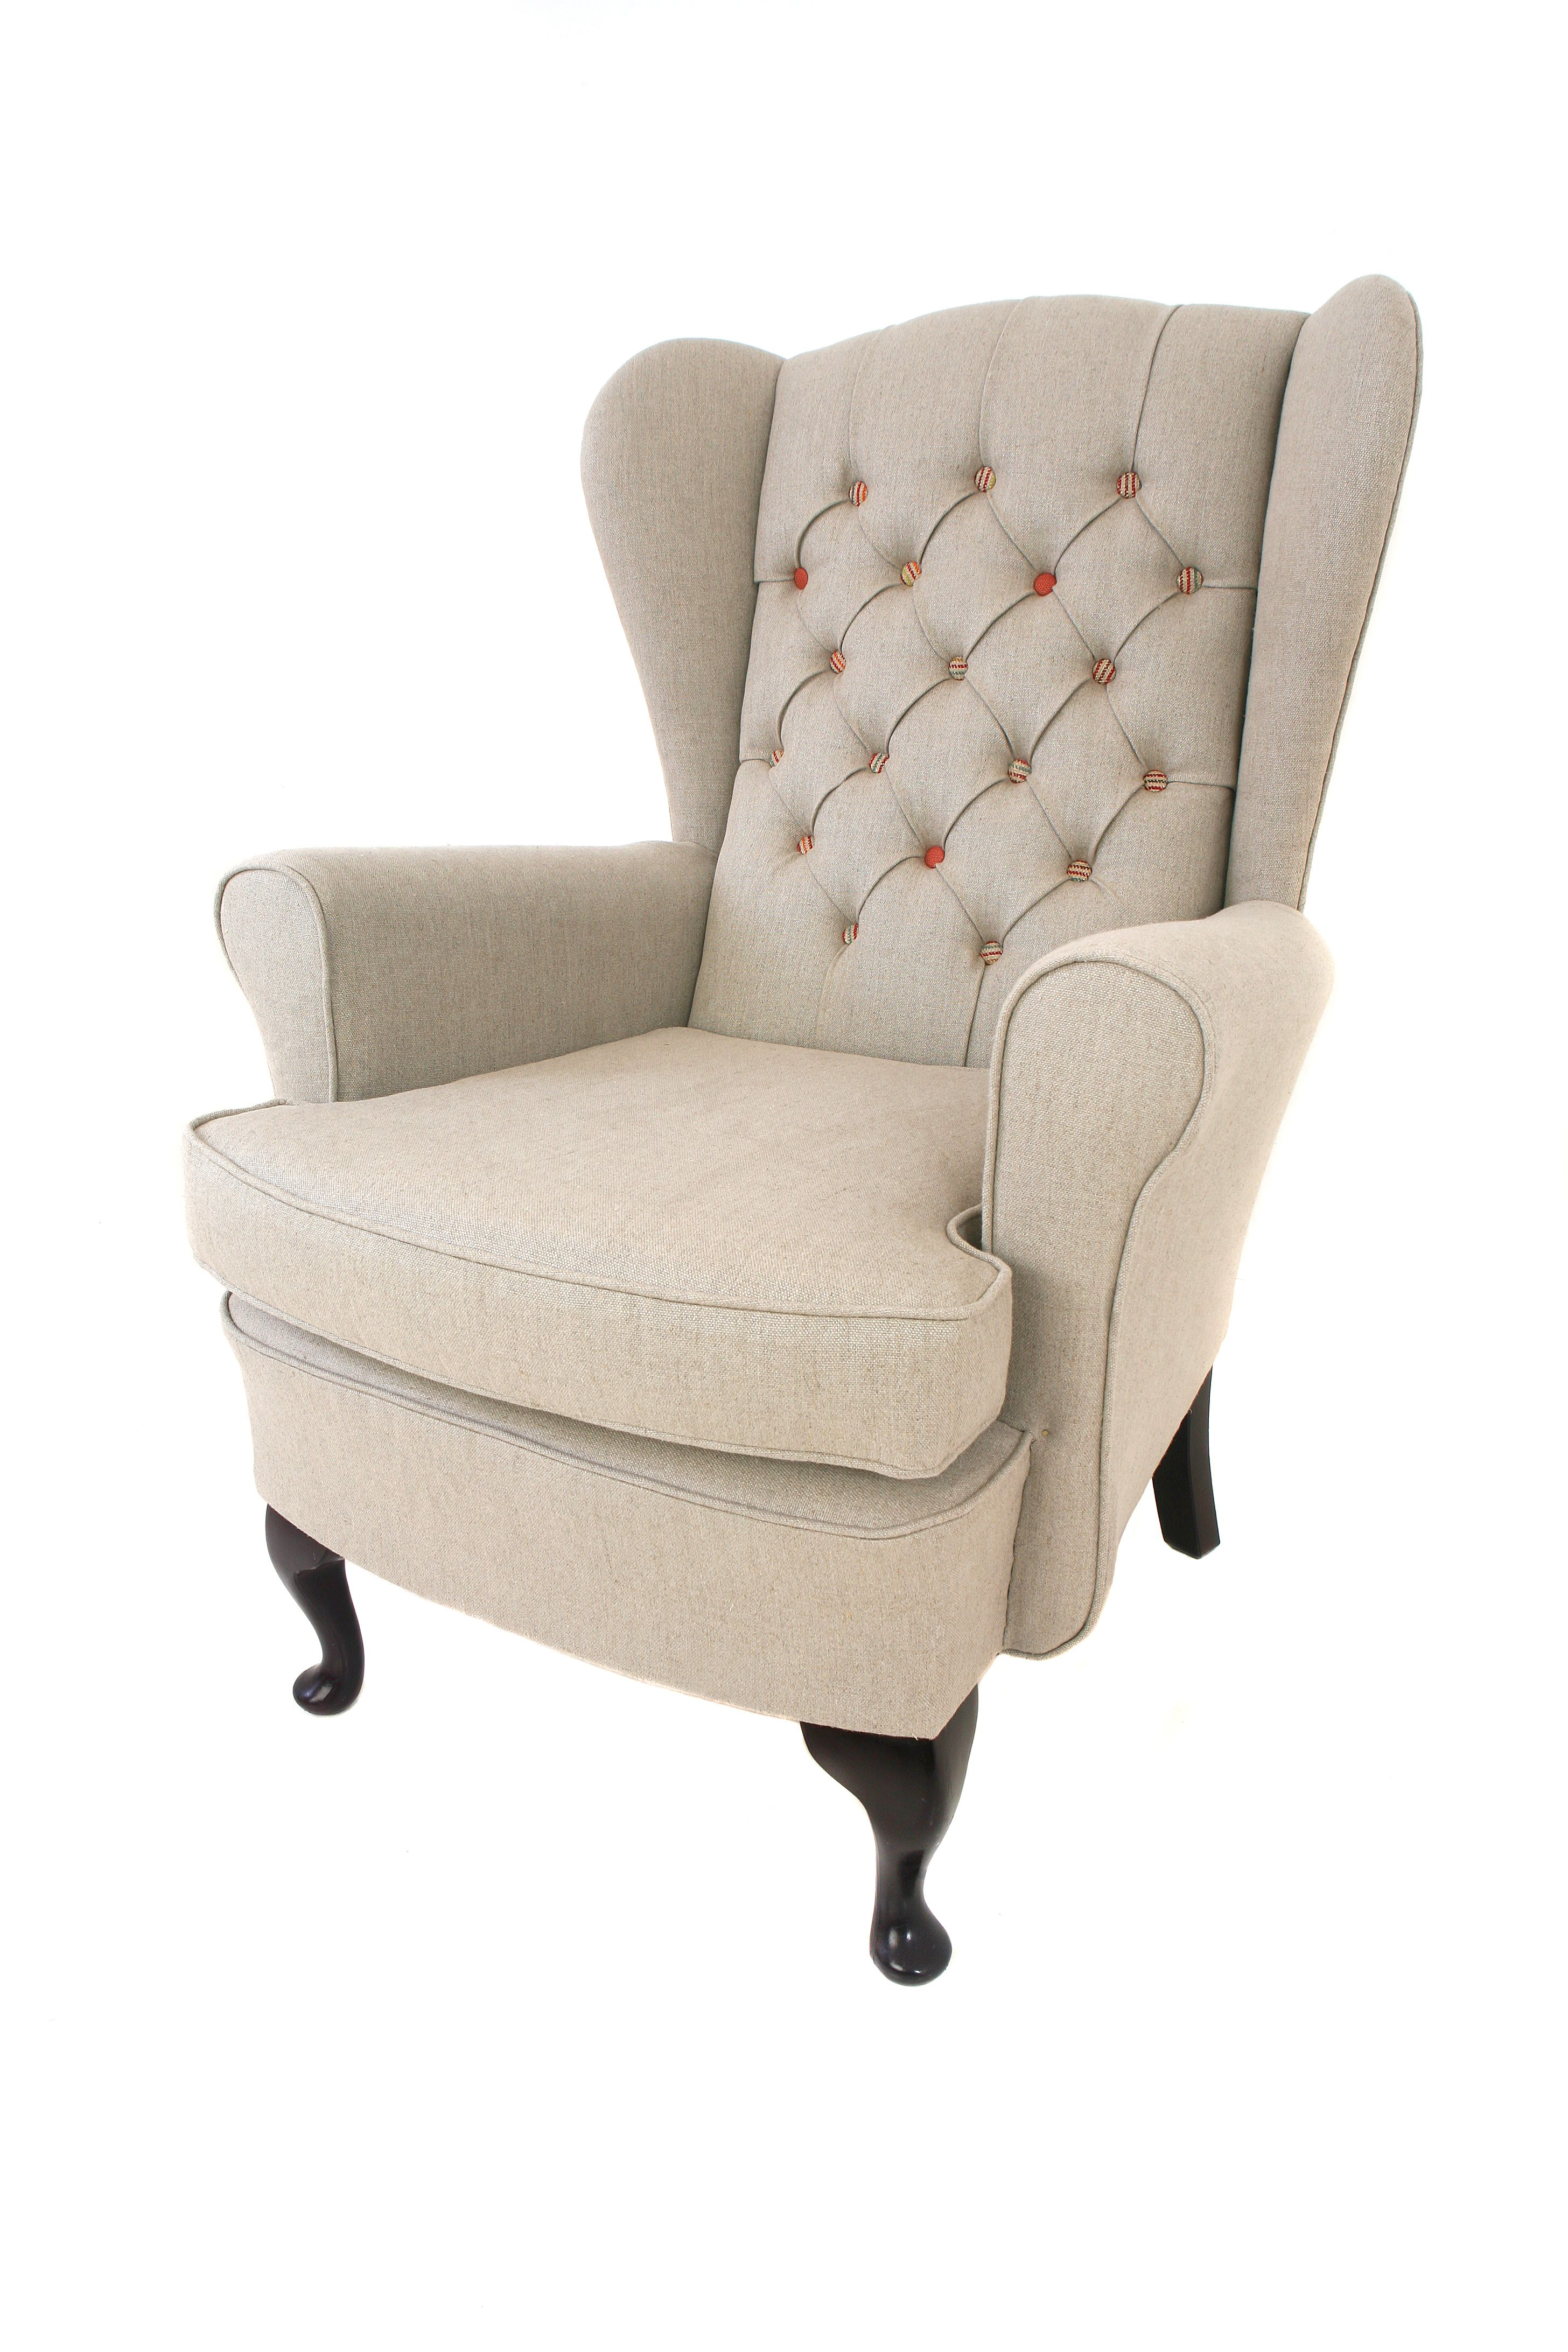 Modern Wing Chair Recovered In A Raw Look Linen By Biggie Best Modern Wingback Chairs Chair Wingback Chair